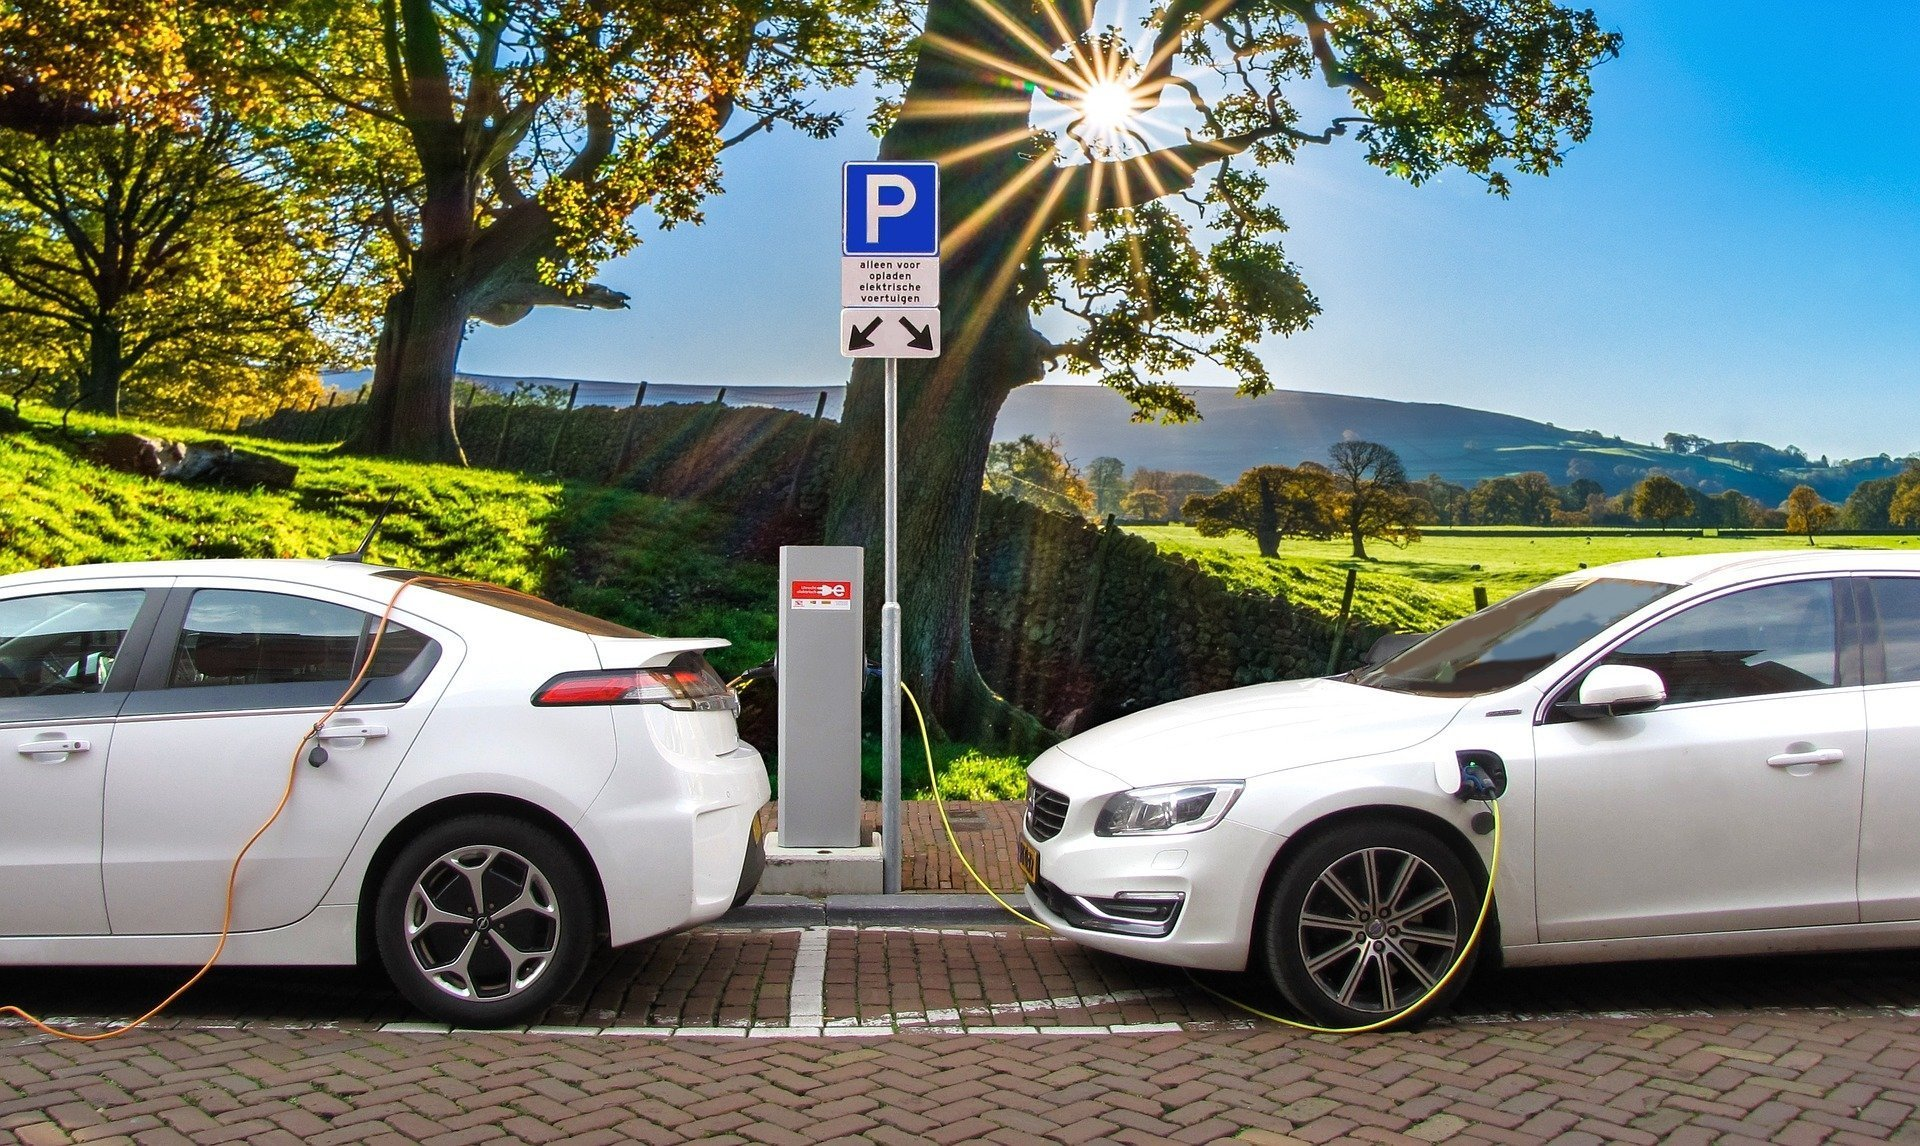 Global Passenger Electric Vehicle Sales Fall 8 In Q3 2019 Counterpoint Research